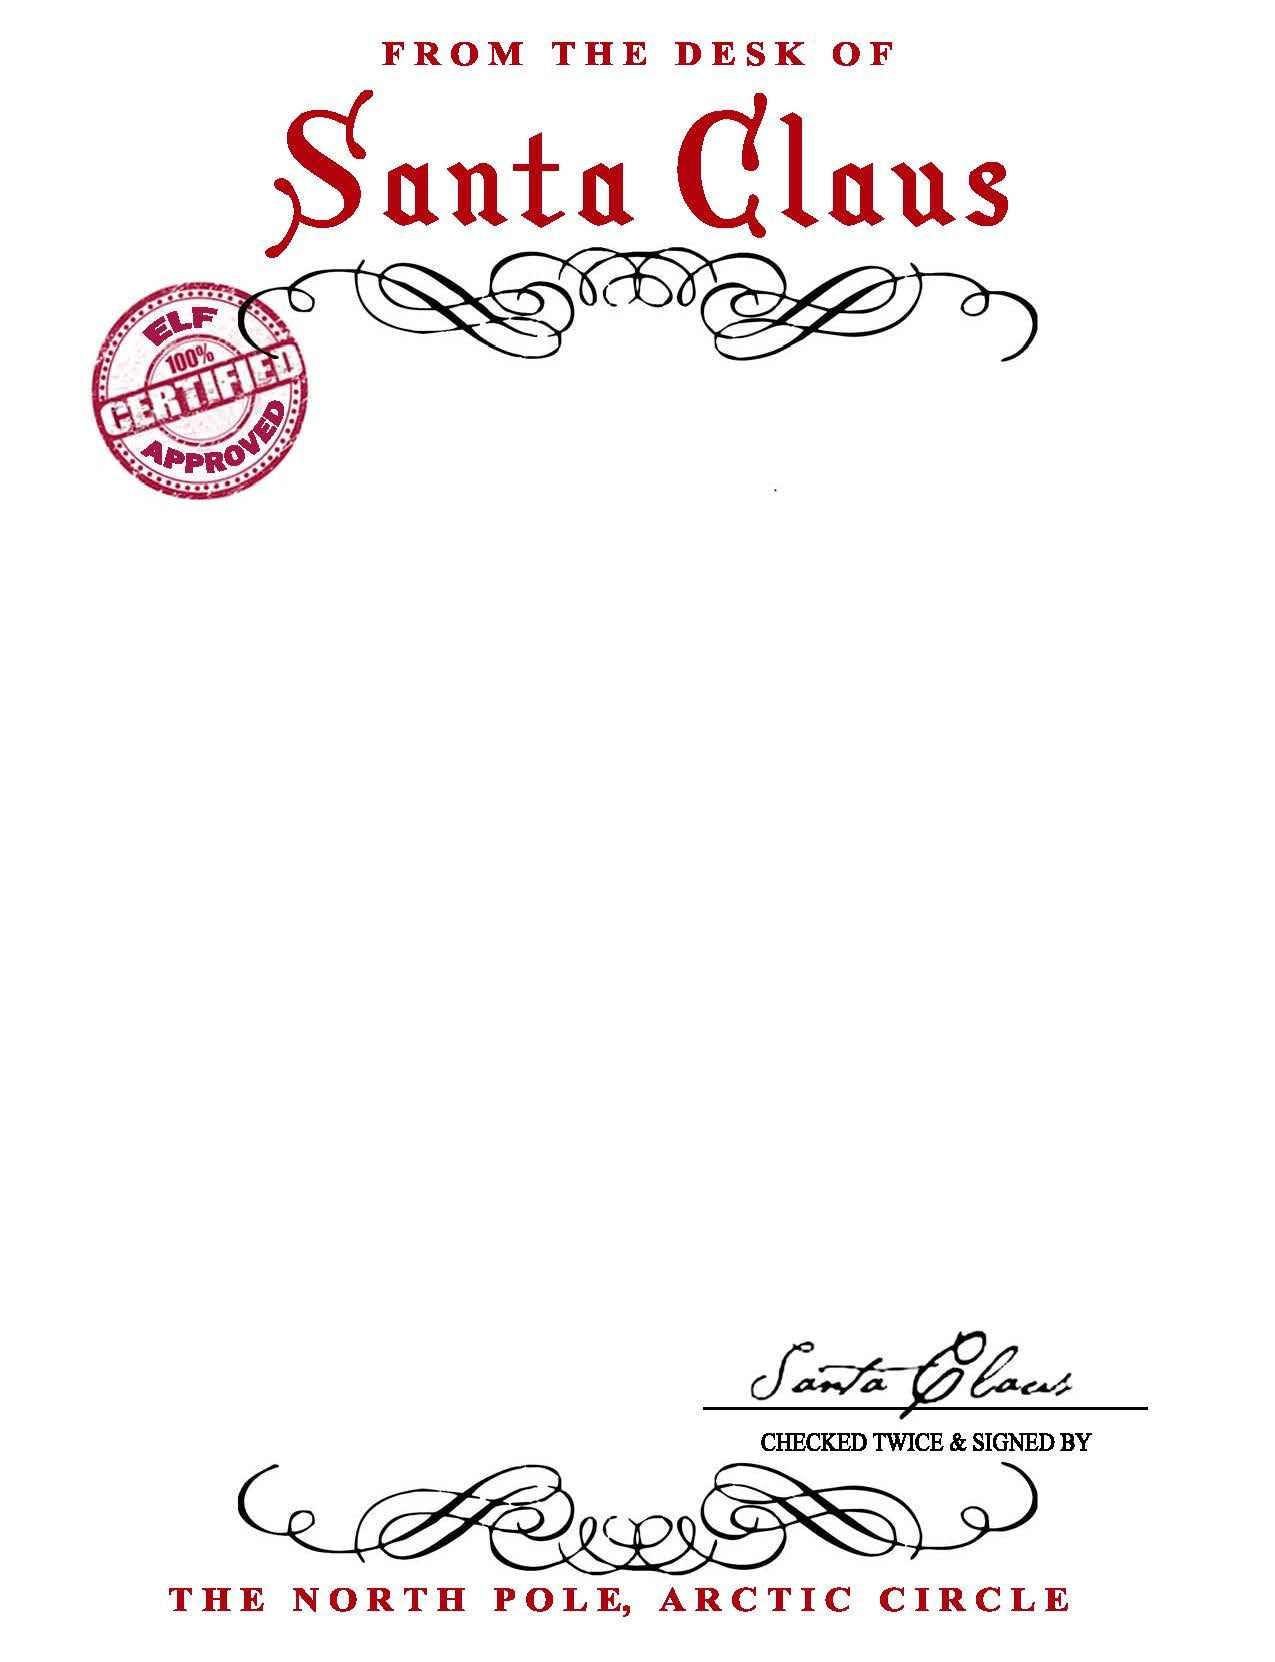 Letter From Santa Free Template Word - Santa Claus Letterhead Will Bring Lots Of Joy to Children